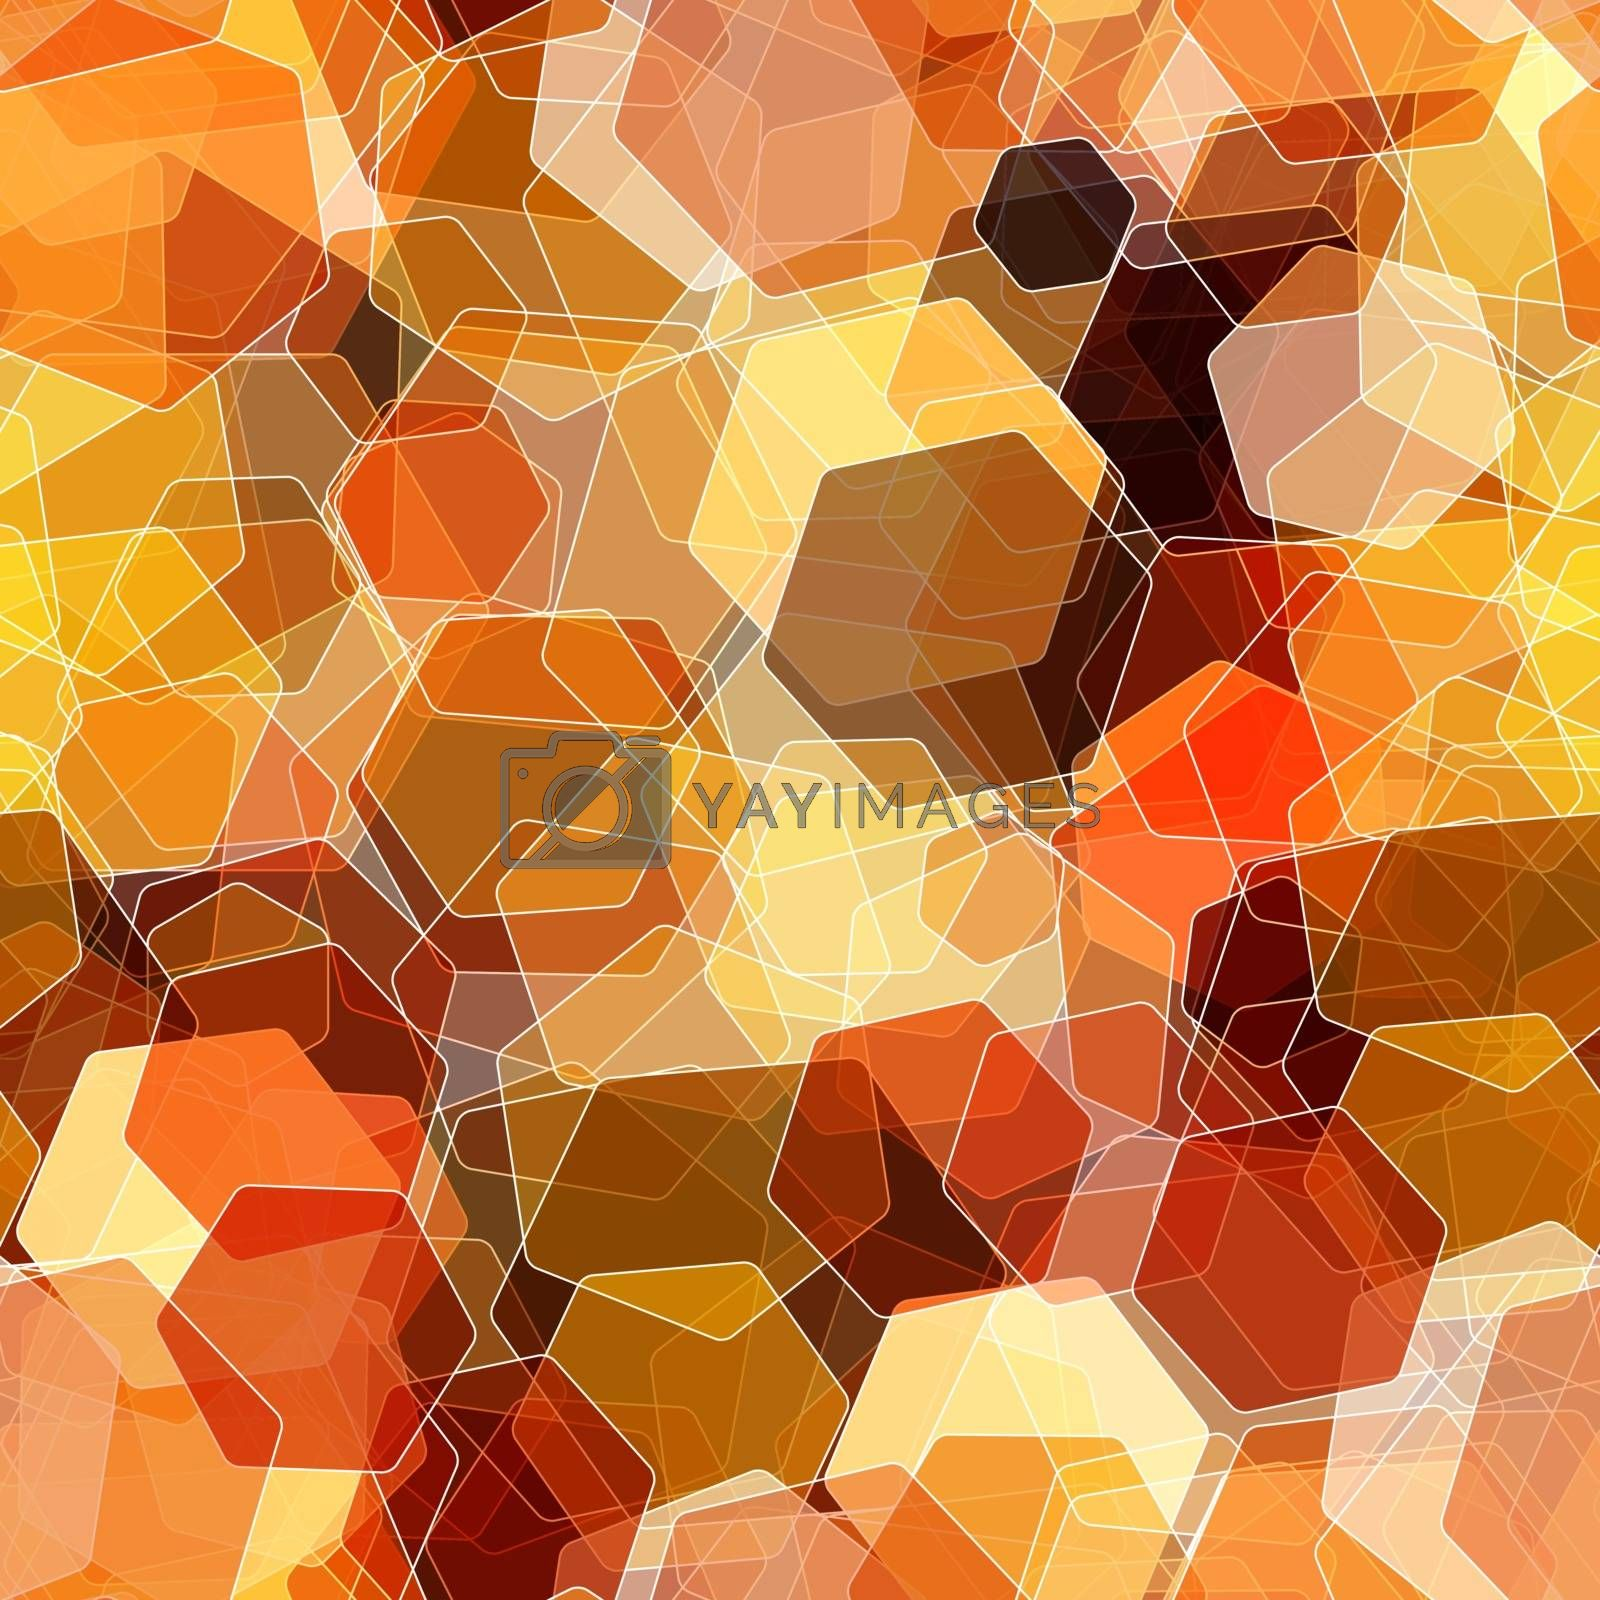 Seamless overlapping colorful hexagon, abstract background.